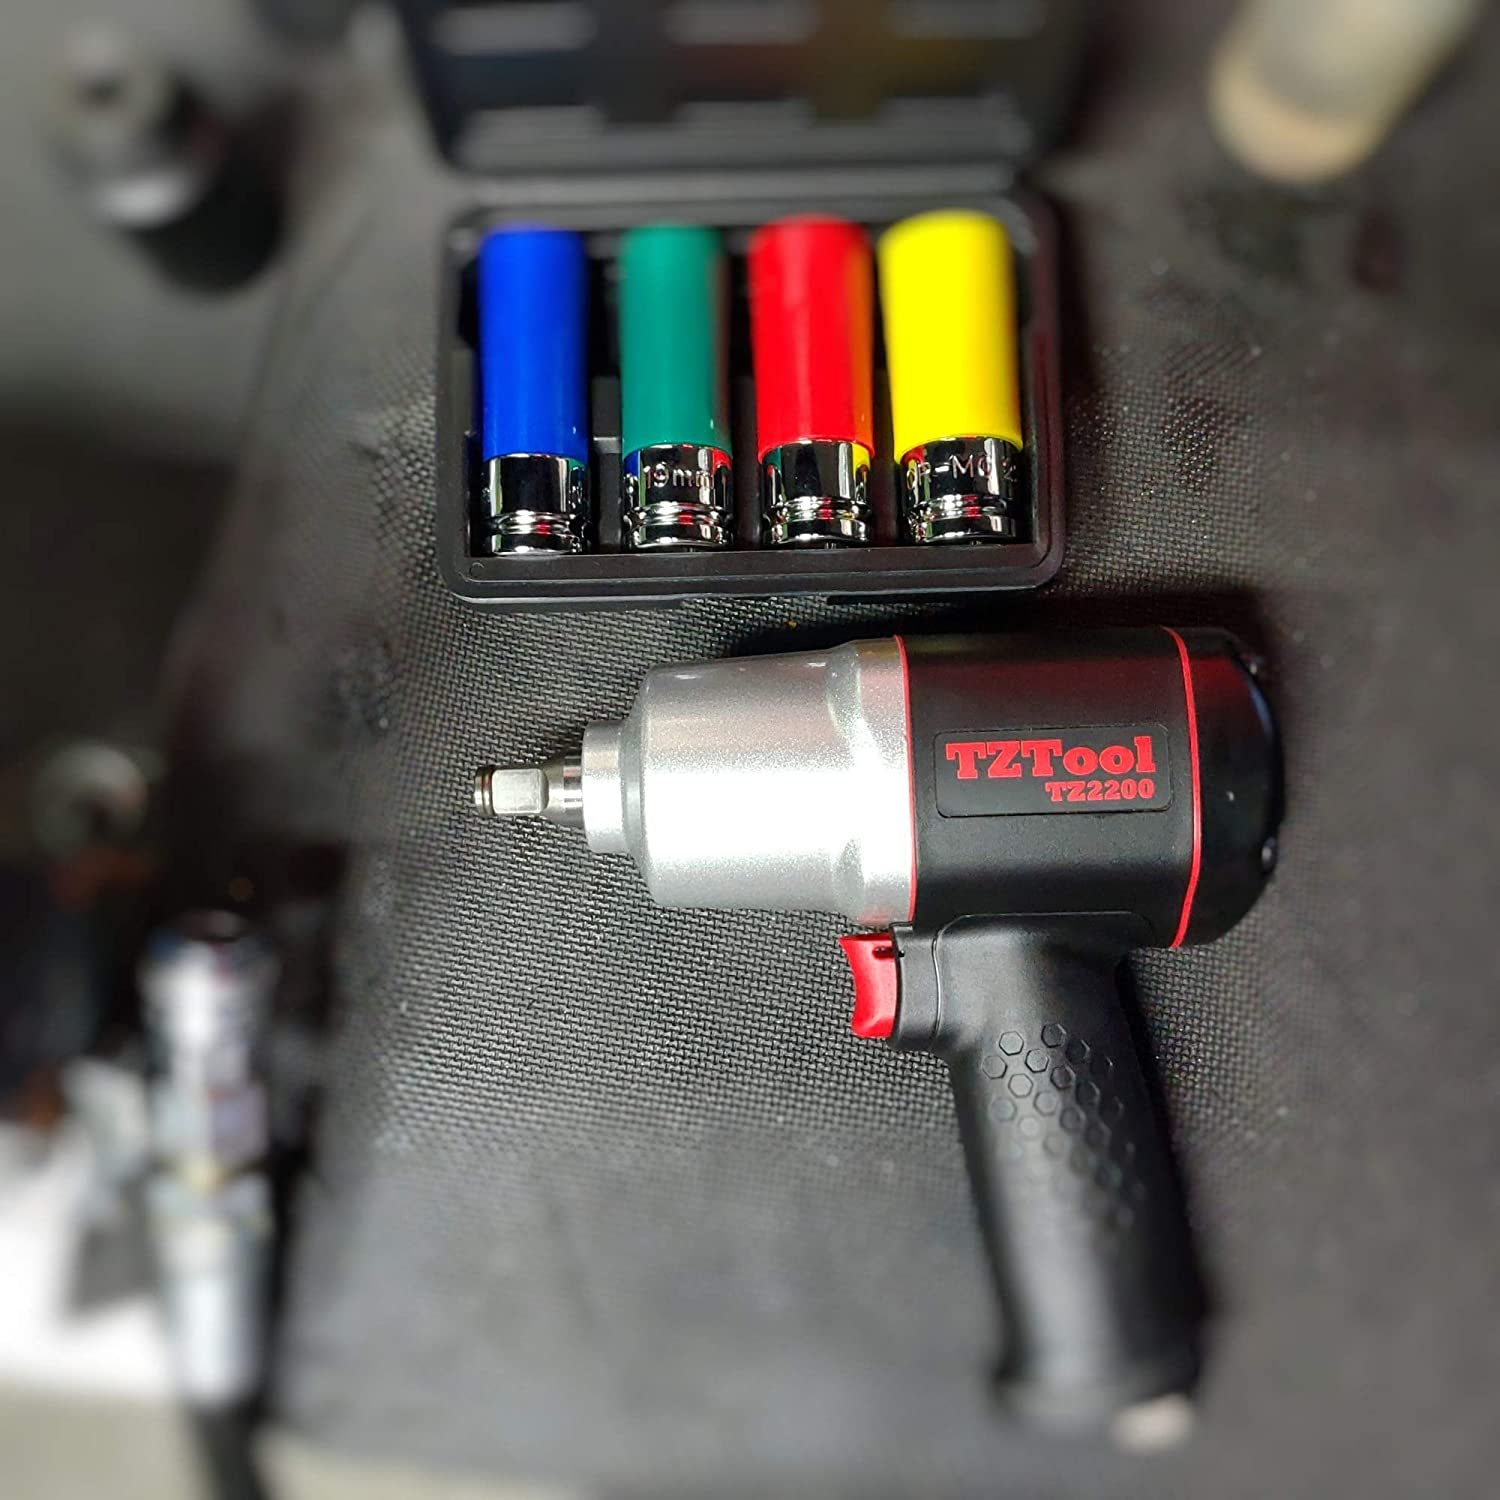 Ultimate torque TZTOOL All New 2200K 1//2 impact wrench